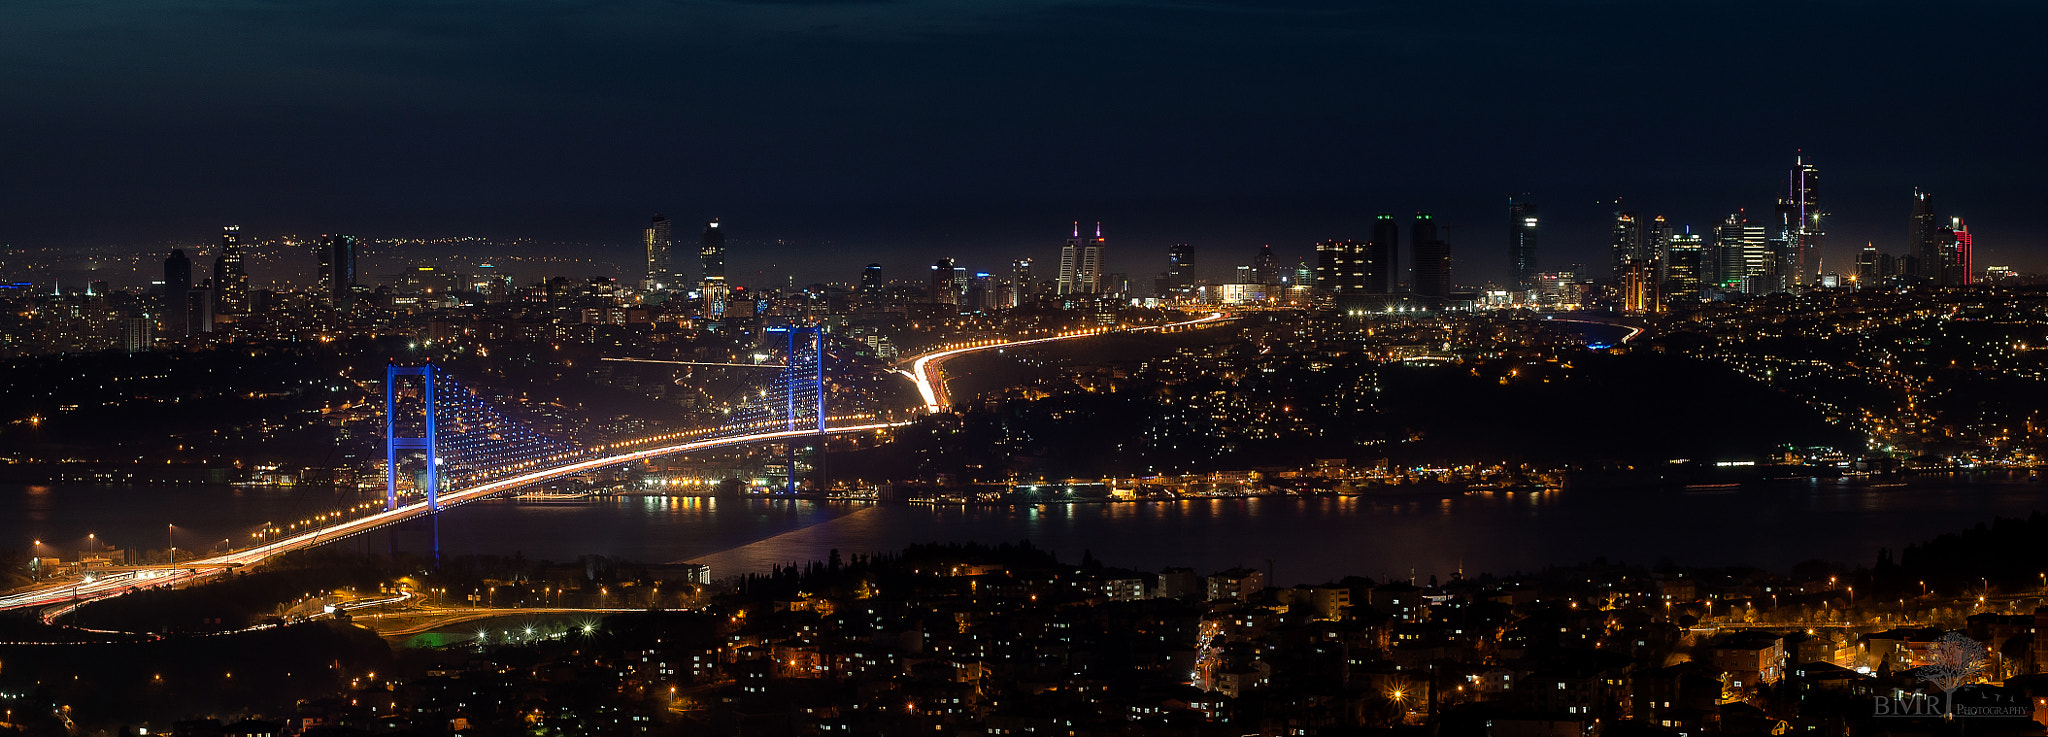 Photograph Istanbul @night by Christian von Travelography on 500px